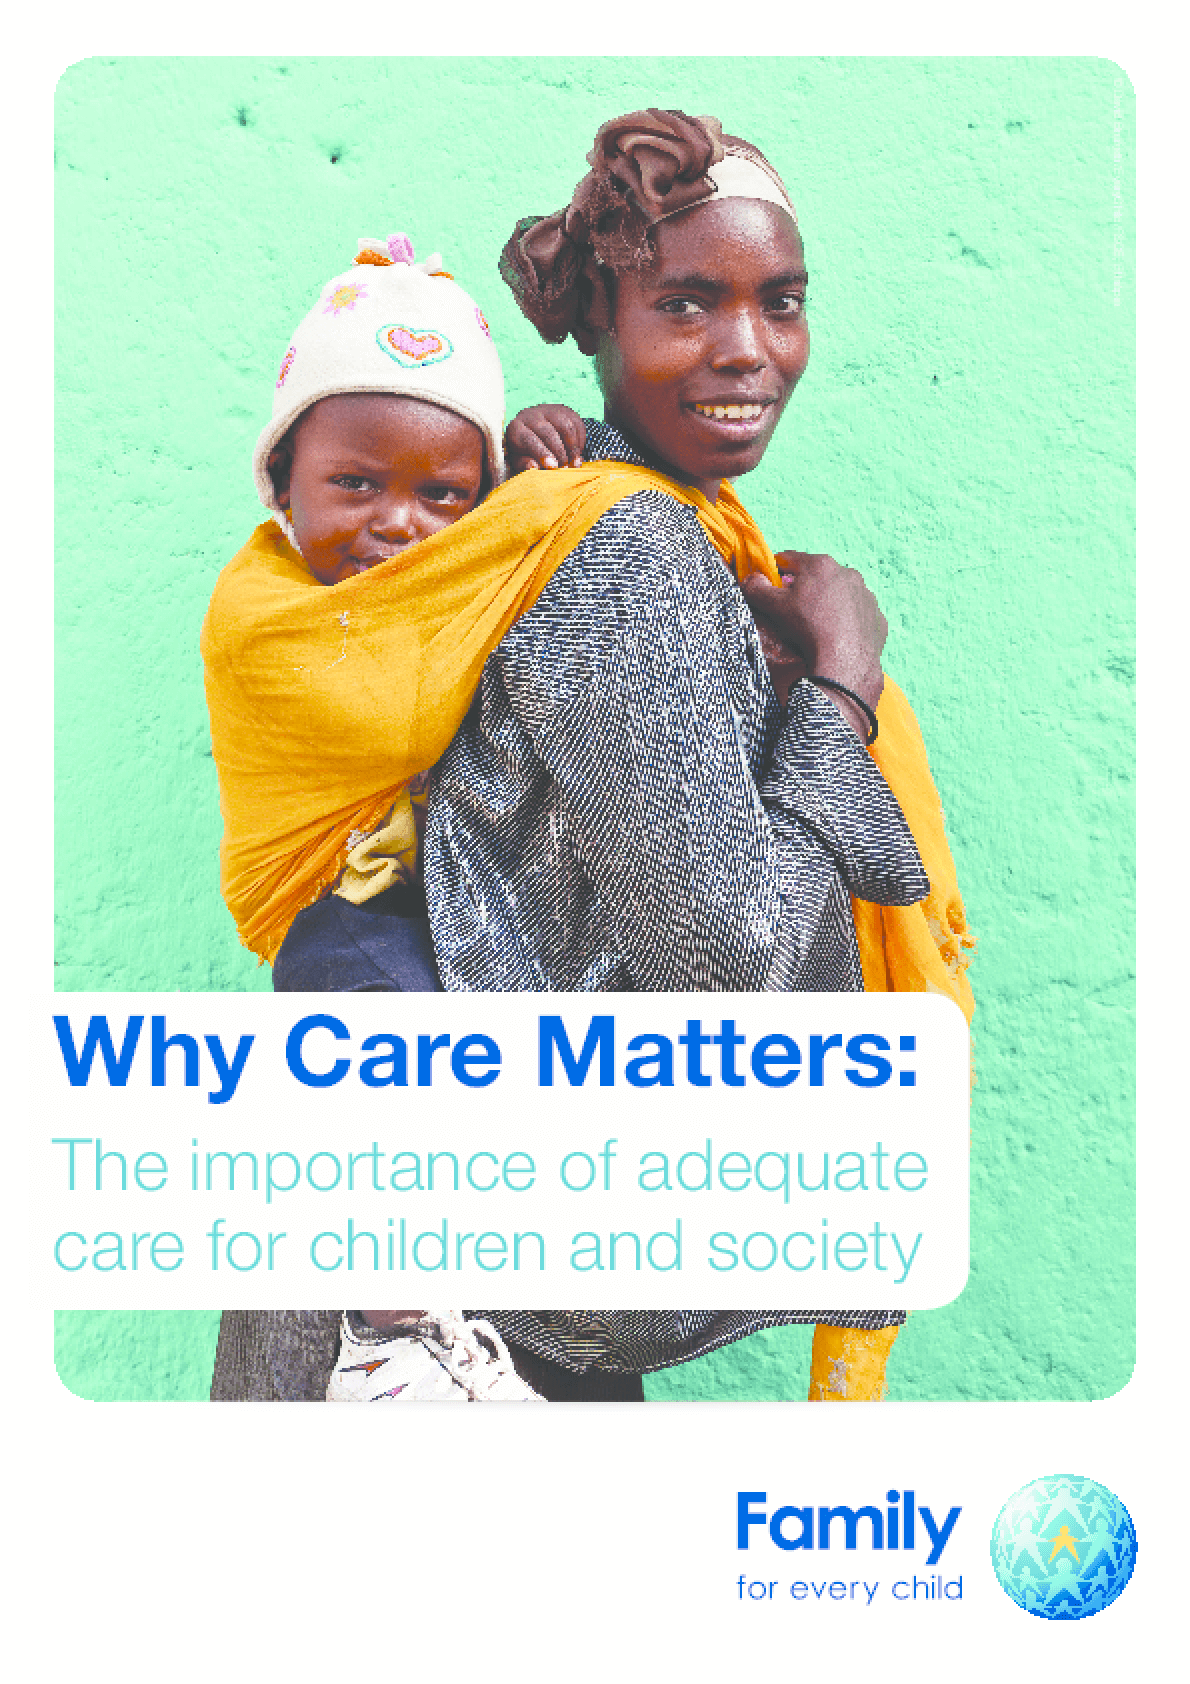 Why Care Matters: The Importance of Adequate Care for Children and Society